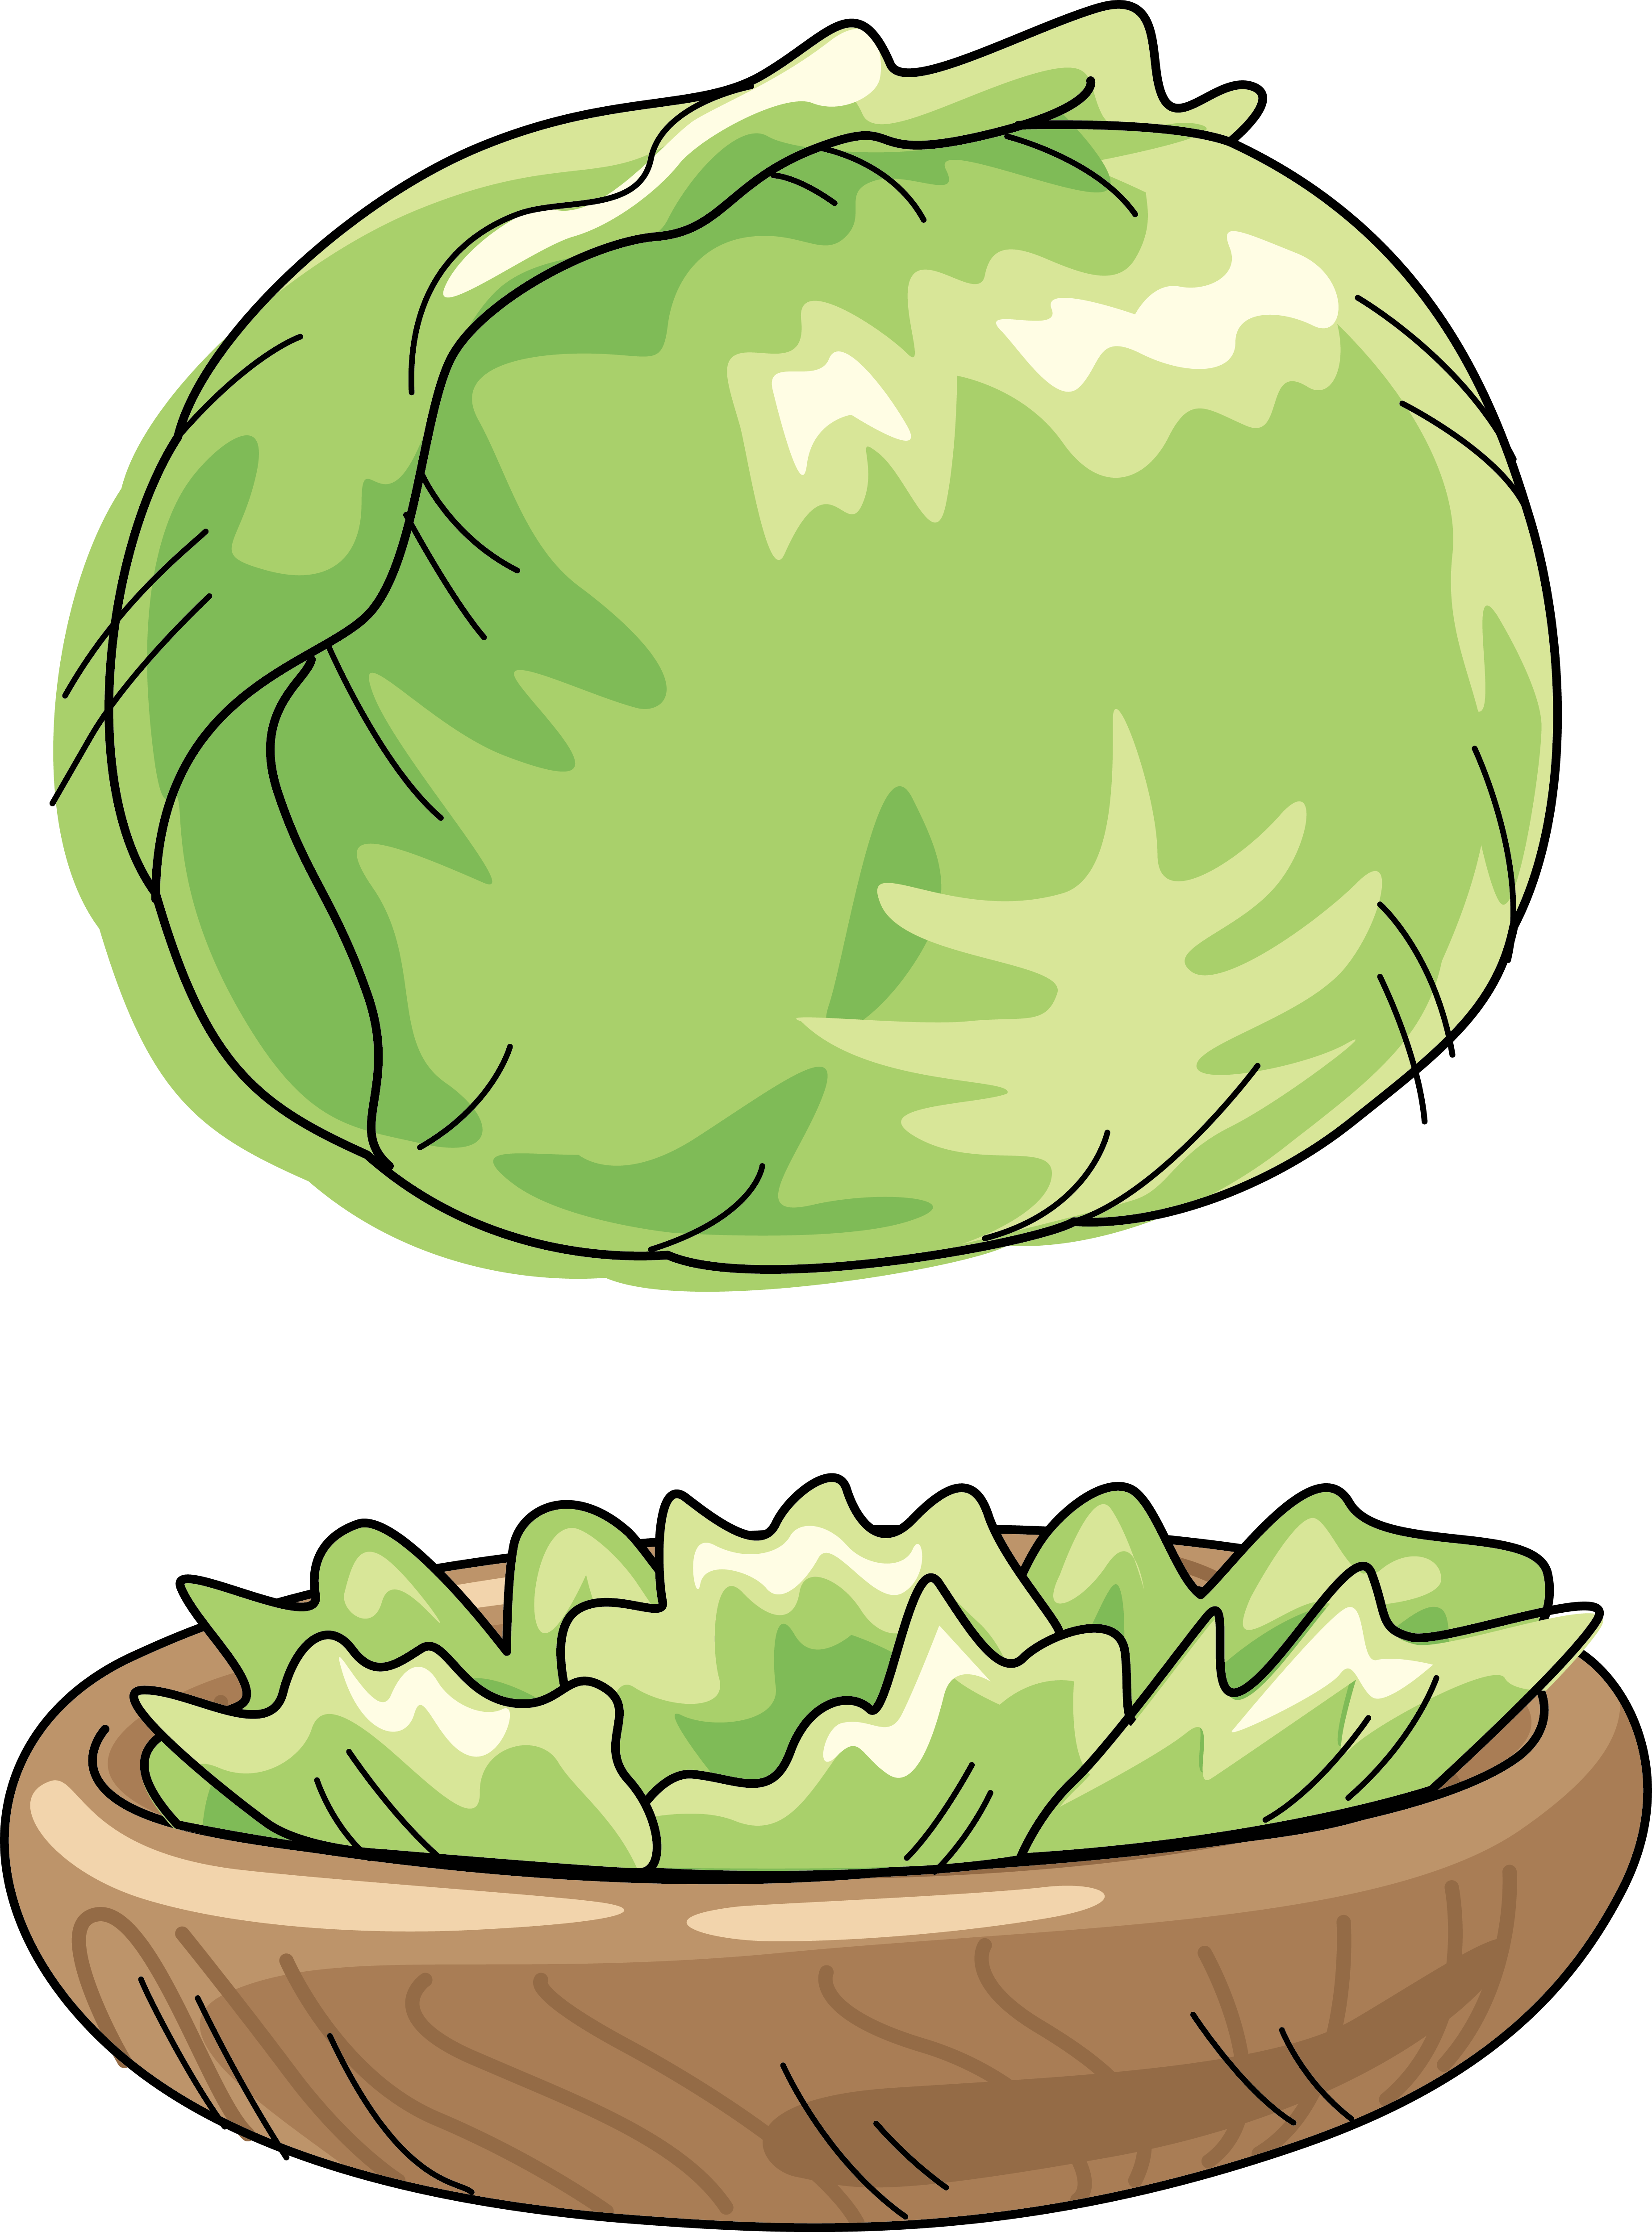 Free clipart apple tree vegan jpg transparent download Cabbage Watermelon Vegetable Cartoon Clip art - Green cabbage 3700 ... jpg transparent download